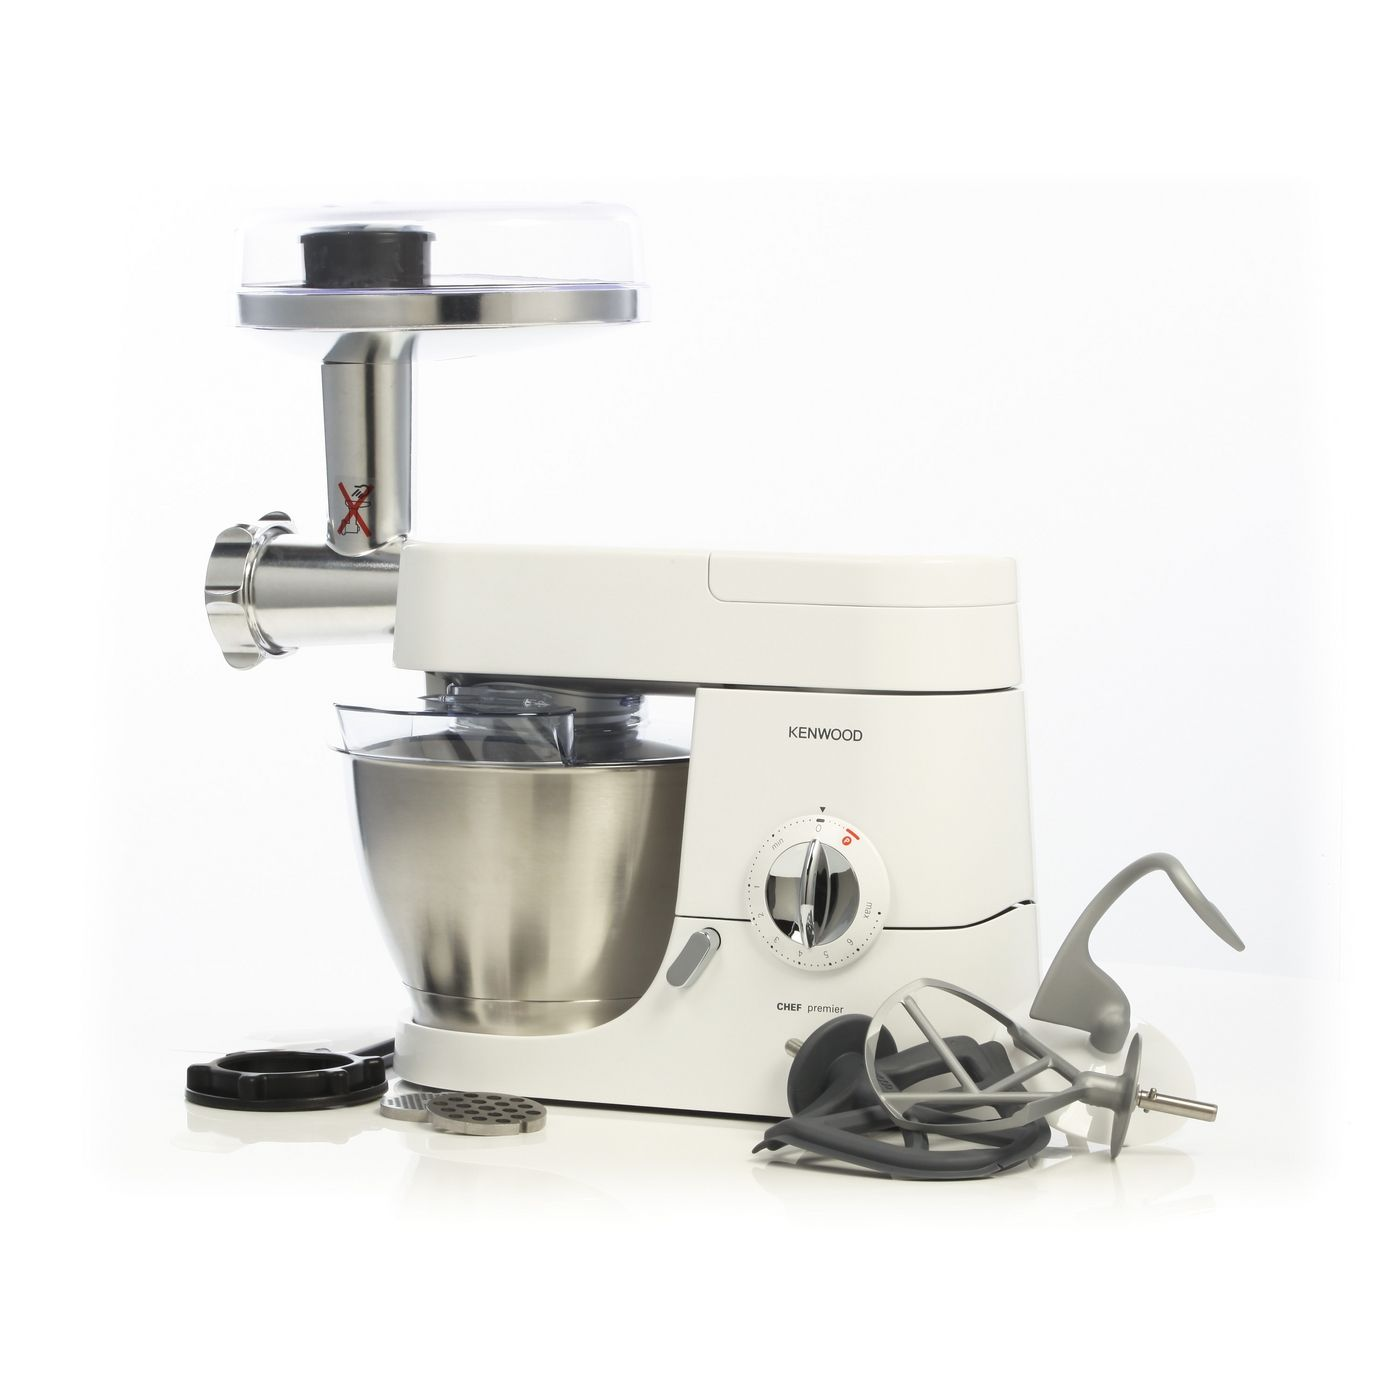 Kenwood Kmc510 Premier Chef 1000w Food Mixer At The Good